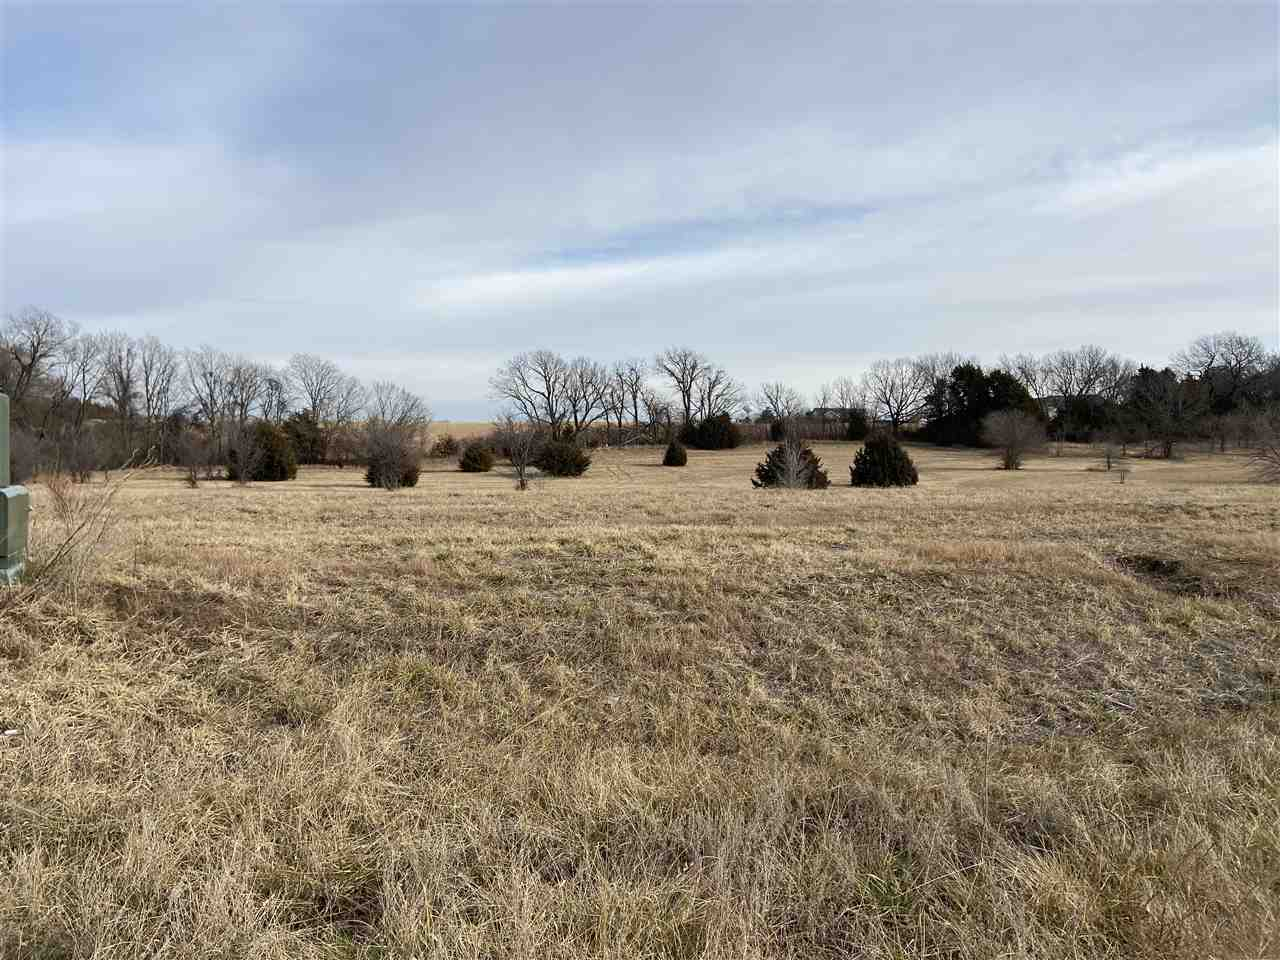 Spacious residential building sites located in the Rockenham Ridge development adjacent to the highly sought after Hwy 24 corridor between Manhattan and Wamego. Paved roads to driveway. Rock Creek School district. NO SPECIALS! Utilities are provided by Evergy and Kansas Gas. Lots are subject to covenants and restrictions and house plans must be approved by the developer with minimum square foot requirements. Schedule a time to view these lots soon, they won't last long!